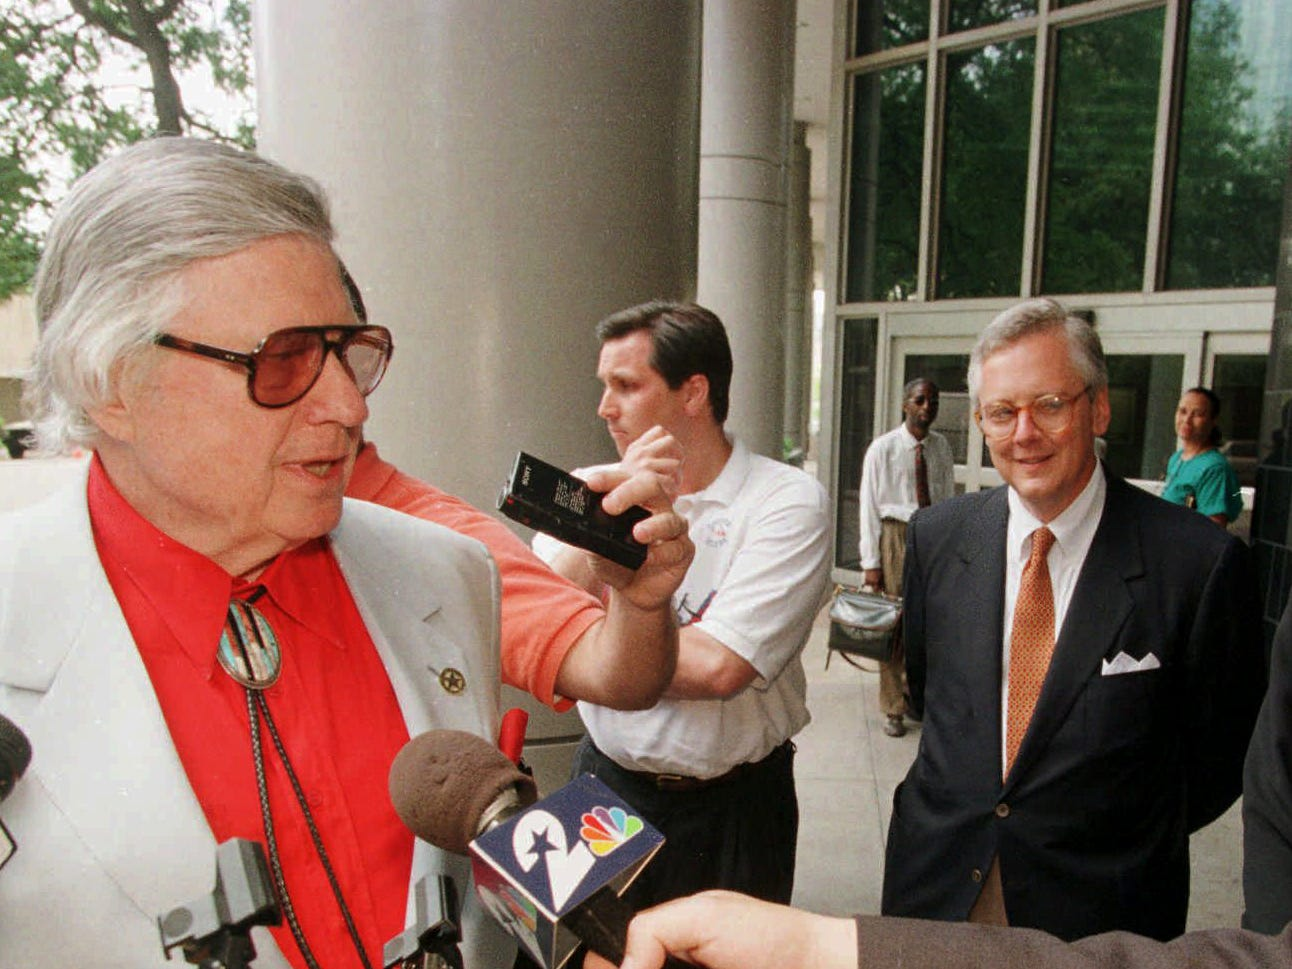 Houston Oilers owner Bud Adams, left, talks with reporters May 8, 1997 in Houston outside the federal courthouse after reaching an agreement, of undisclosed conditions, during mediation with Drayton McLane, Jr., owner of the Houston Astros and head of Astrodome USA, that releases the Oilers from their contract with the Astrodome and likely will allow the football team to play in Tennessee this fall. Smiling at right is federal mediator Alice Olive Parrott.